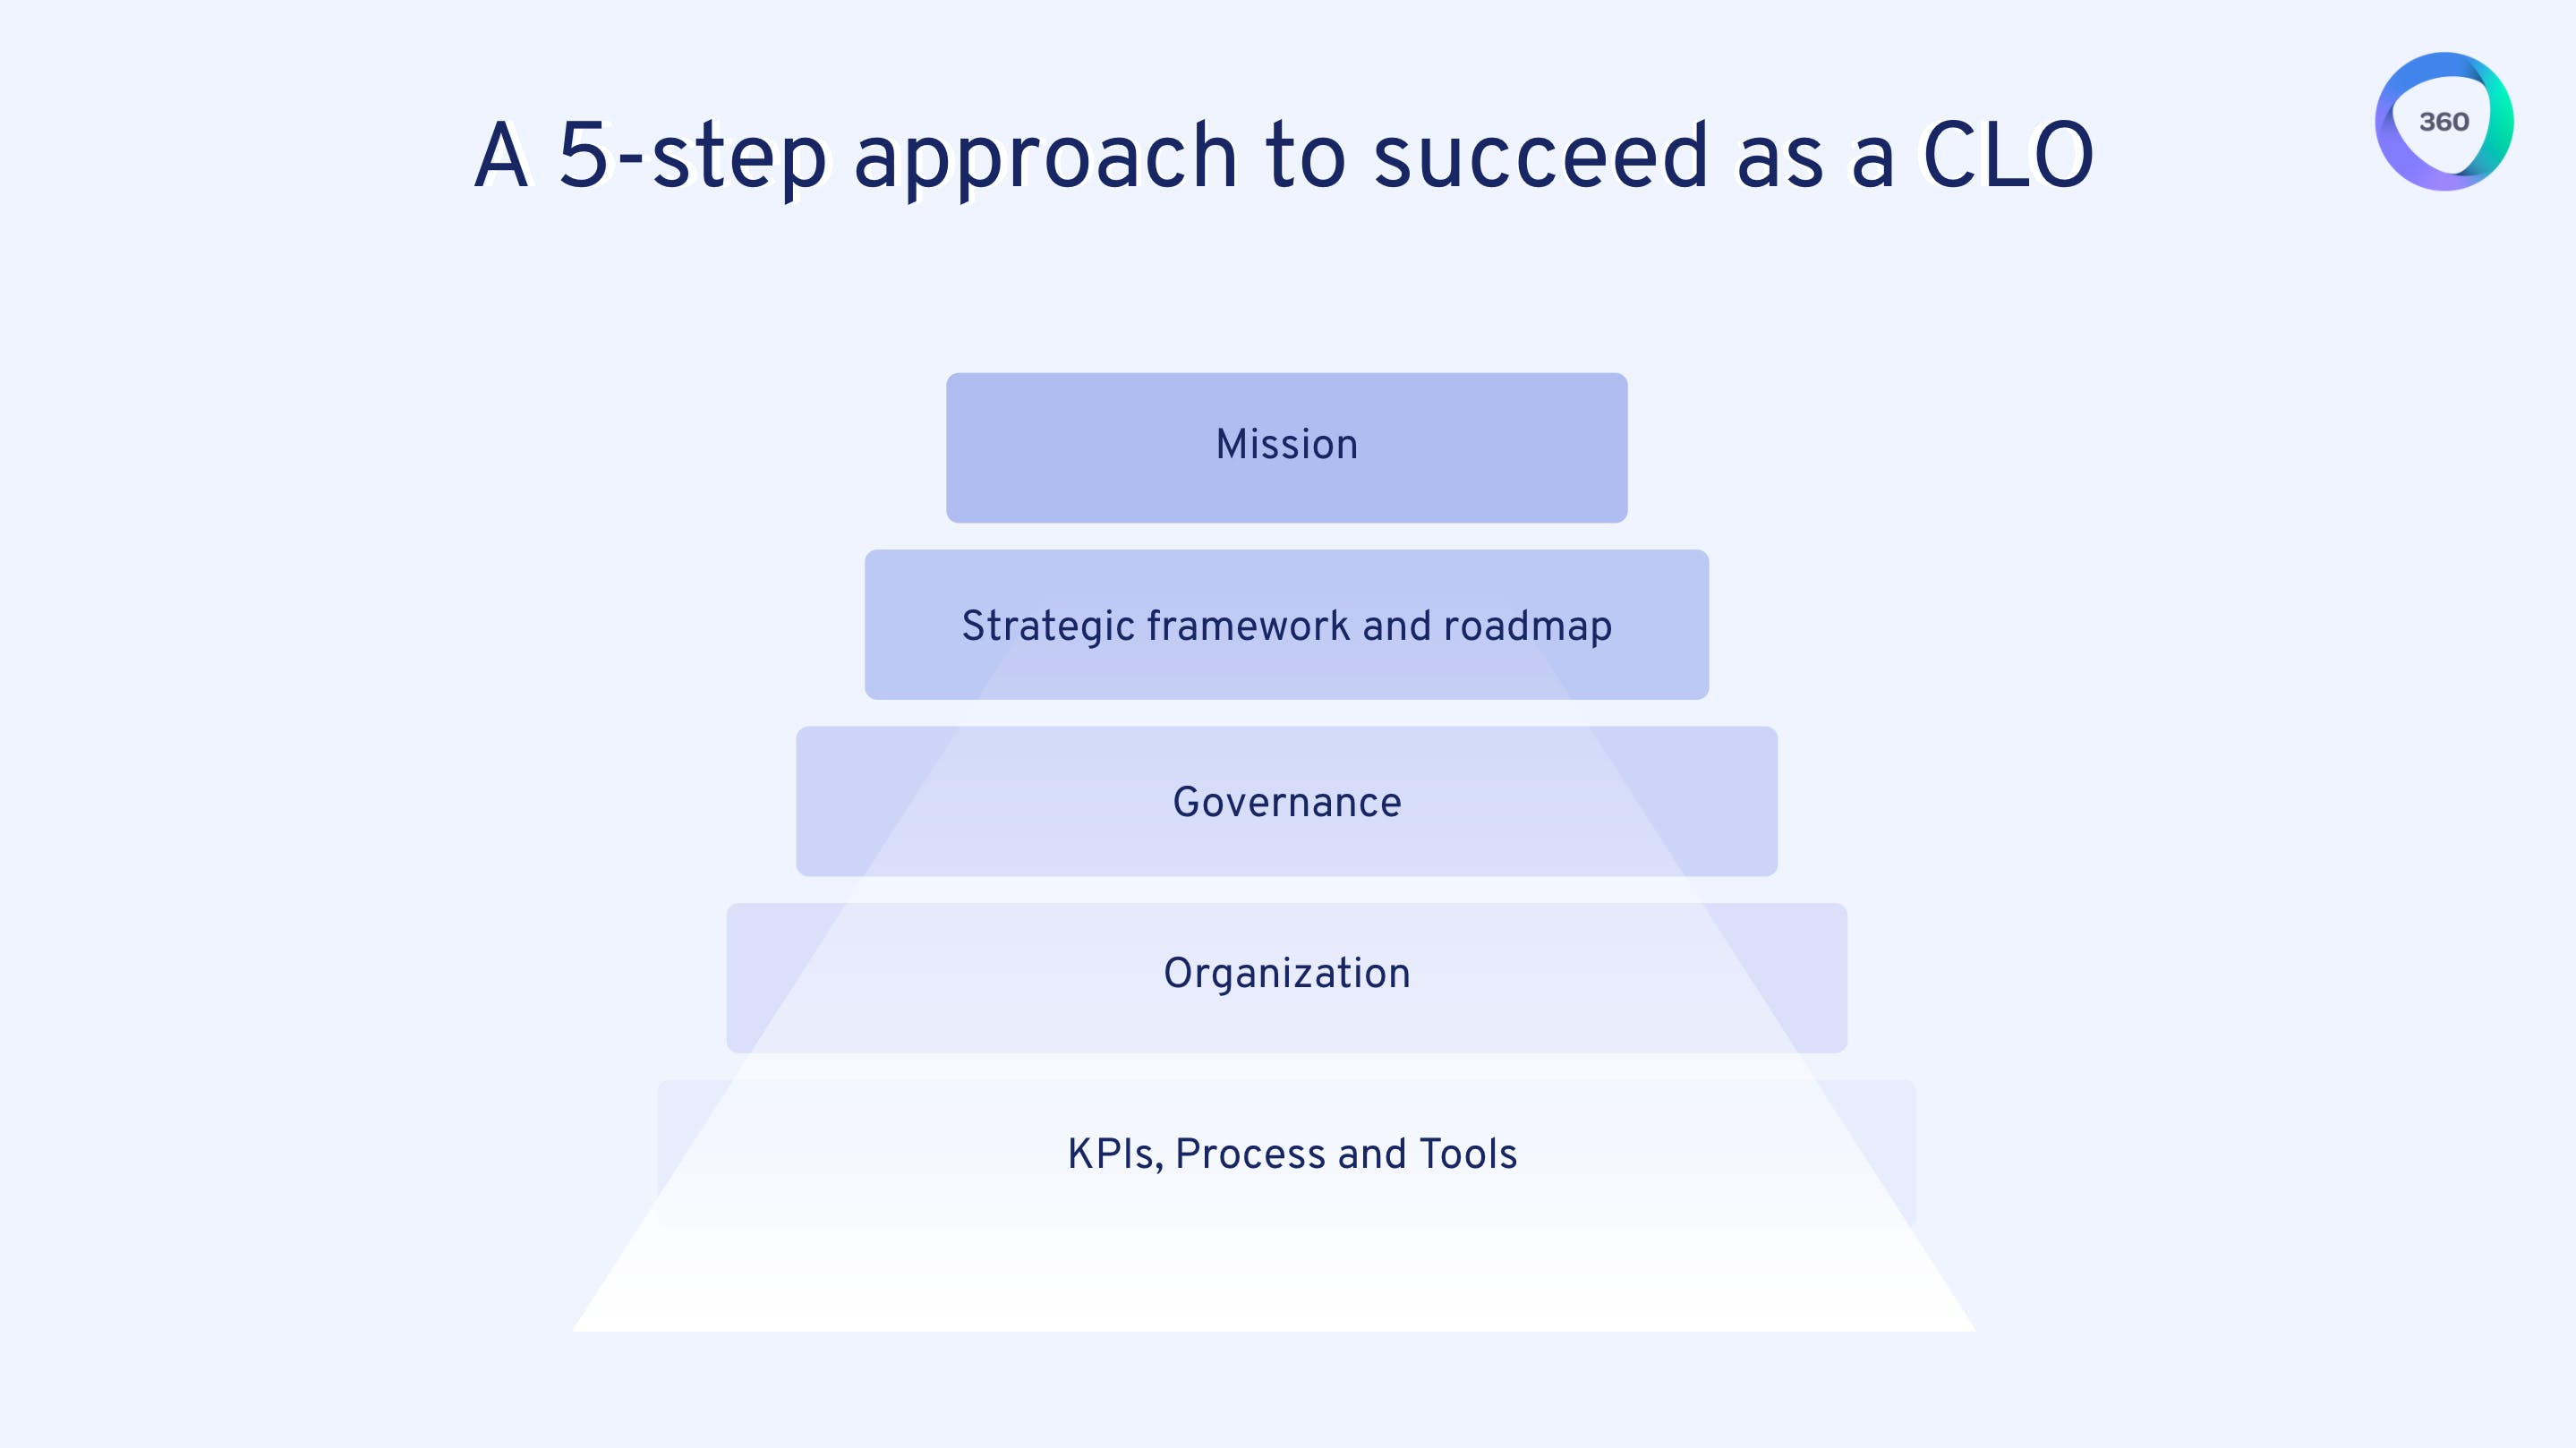 5-step approach to succeed as a CLO